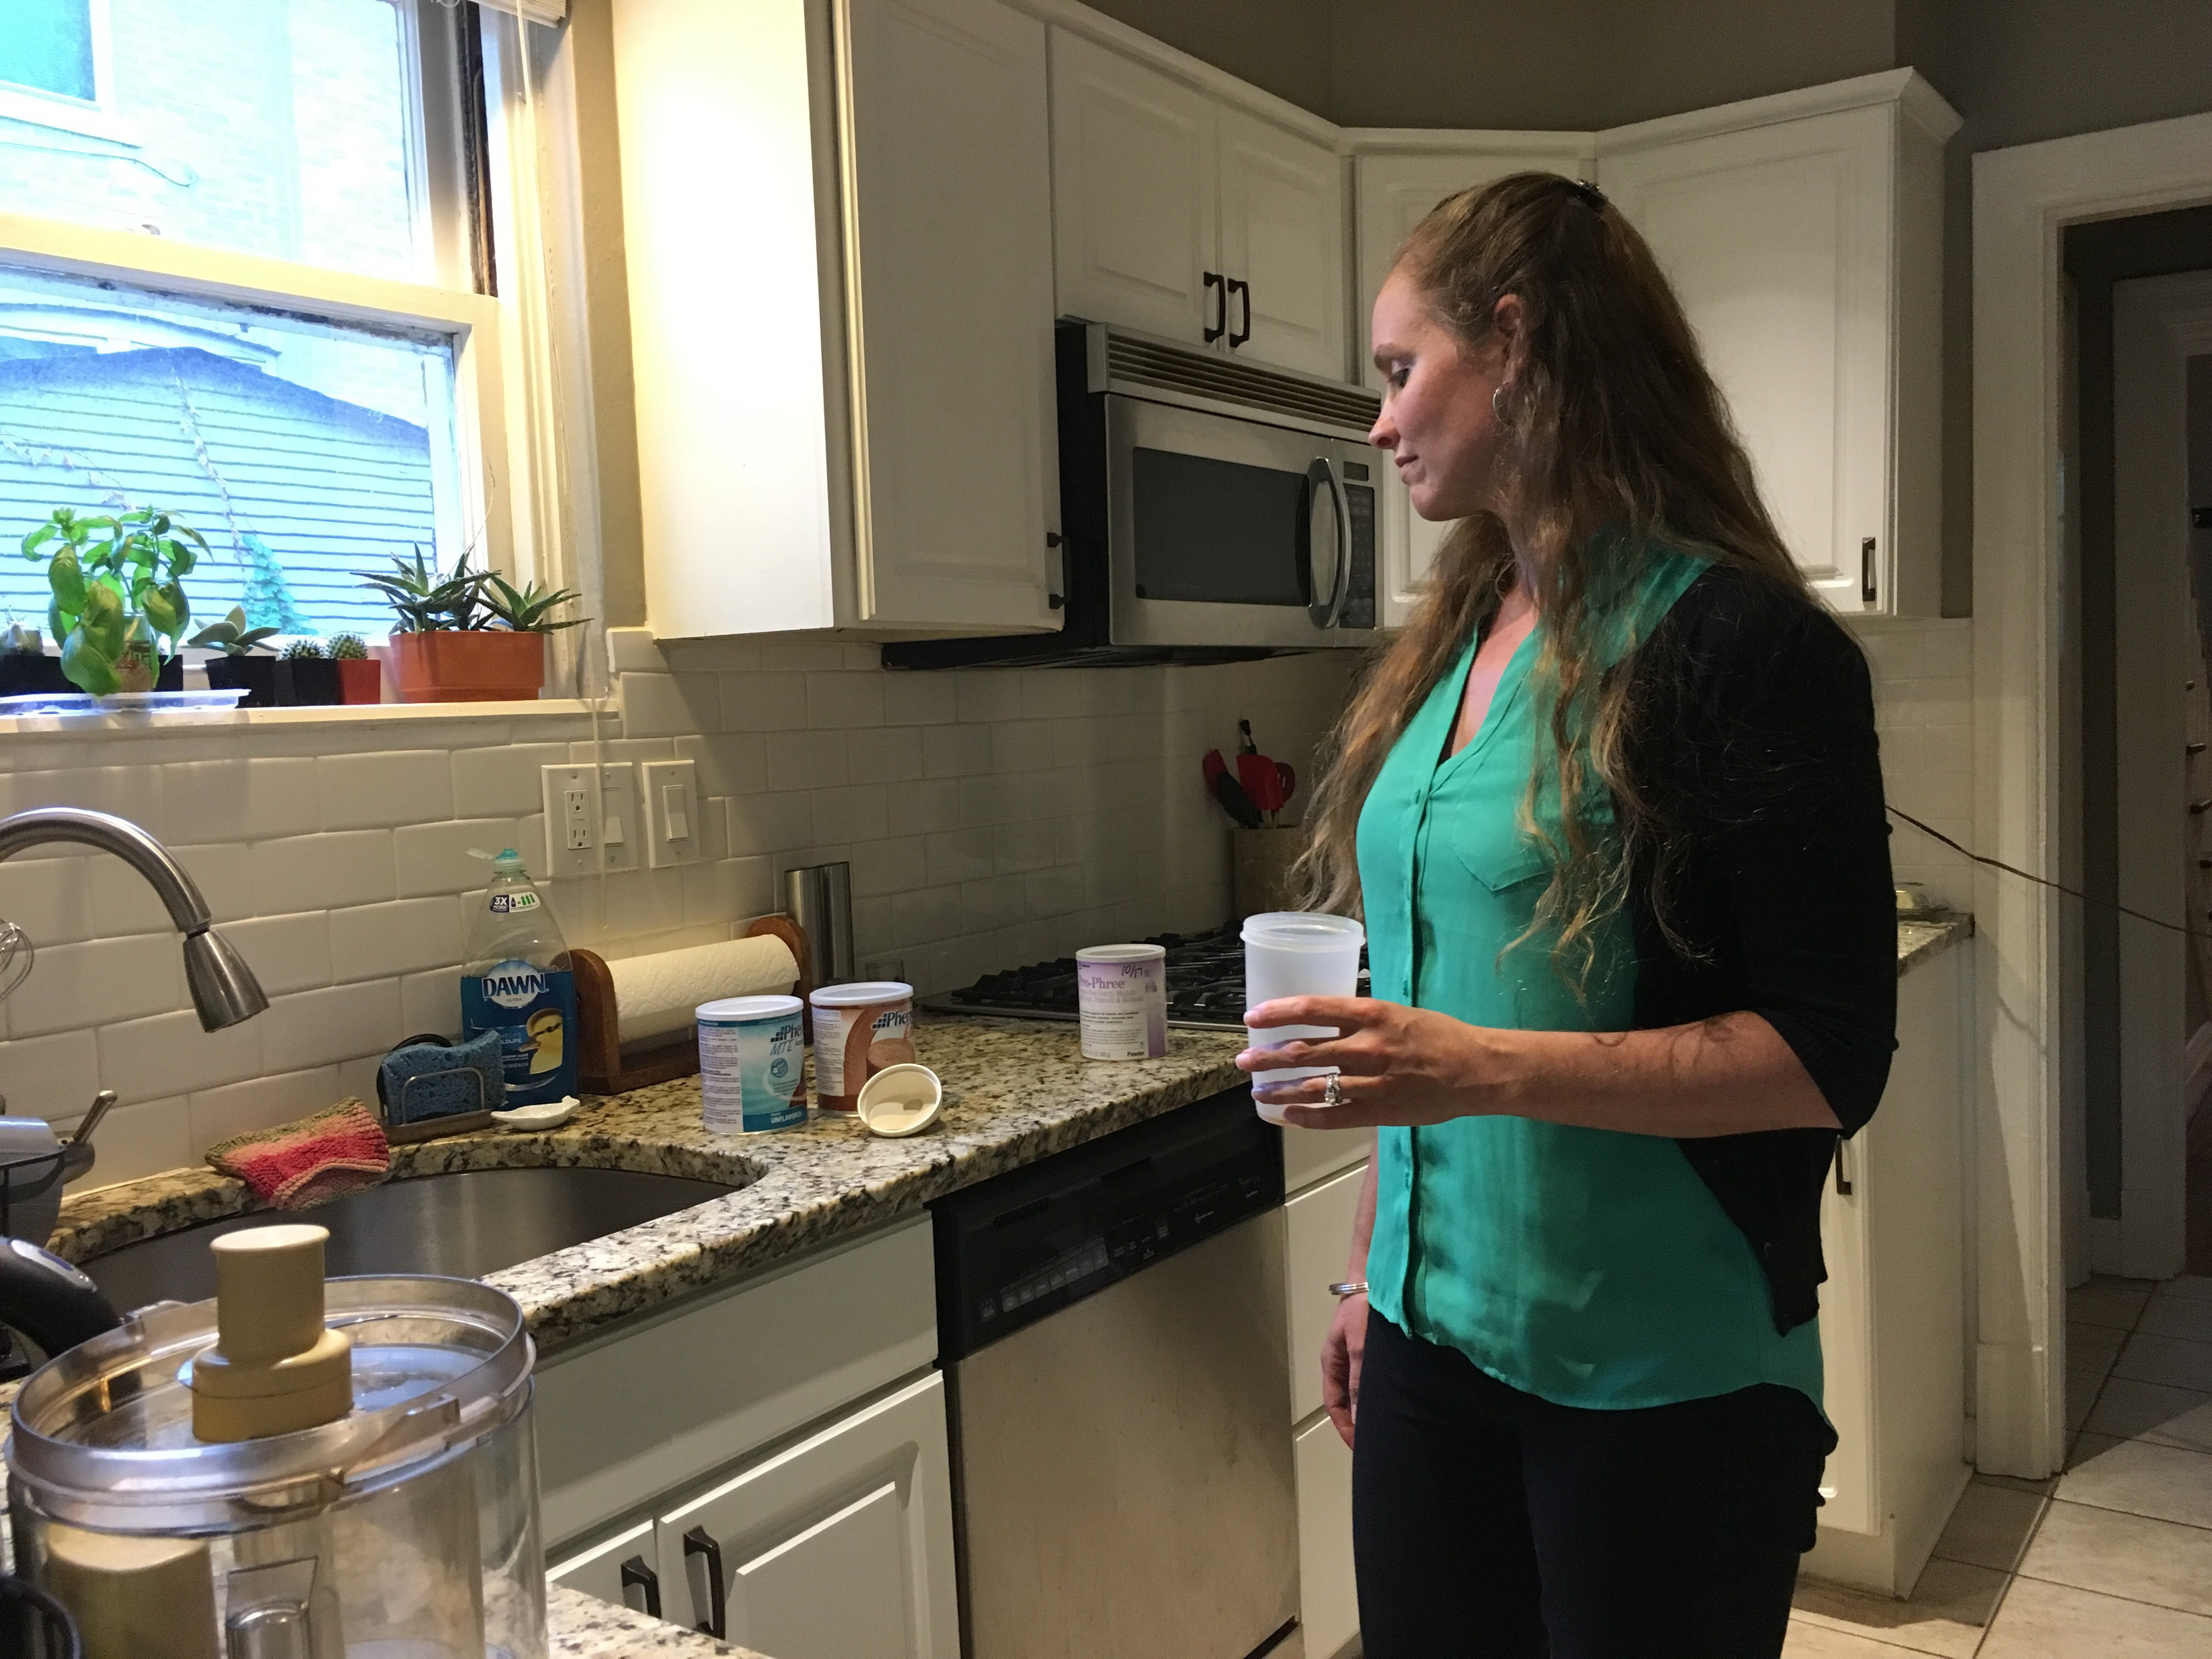 Amanda Moller prepares her formula in her home in University City, Missouri. The formula is vital to treat a rare condition, but her insurer doesn't cover it.